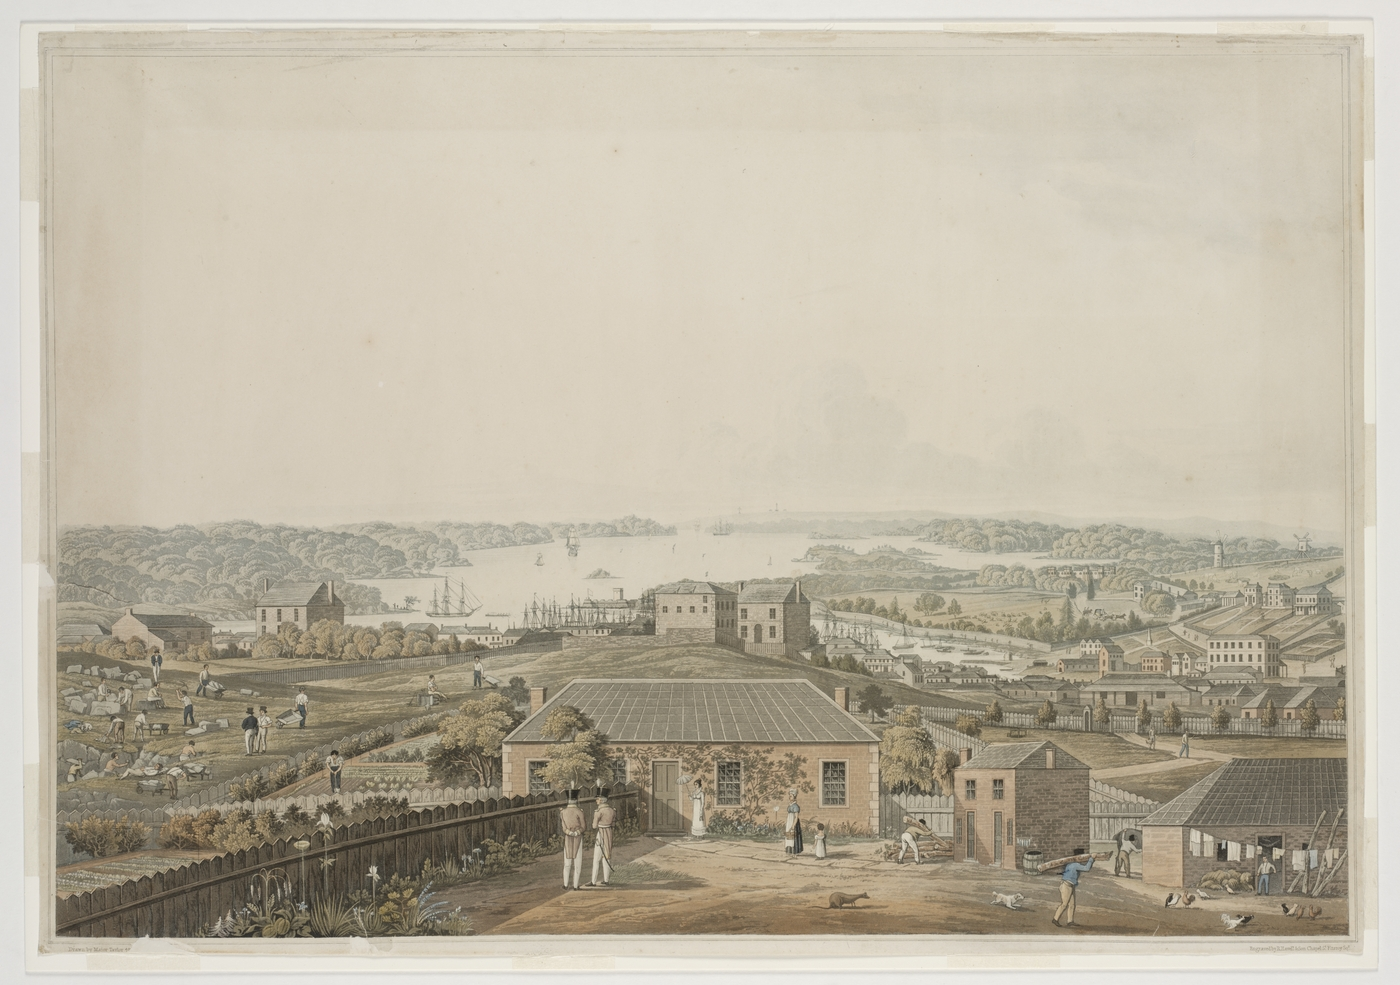 Engraving of Port Jackson ca 1821